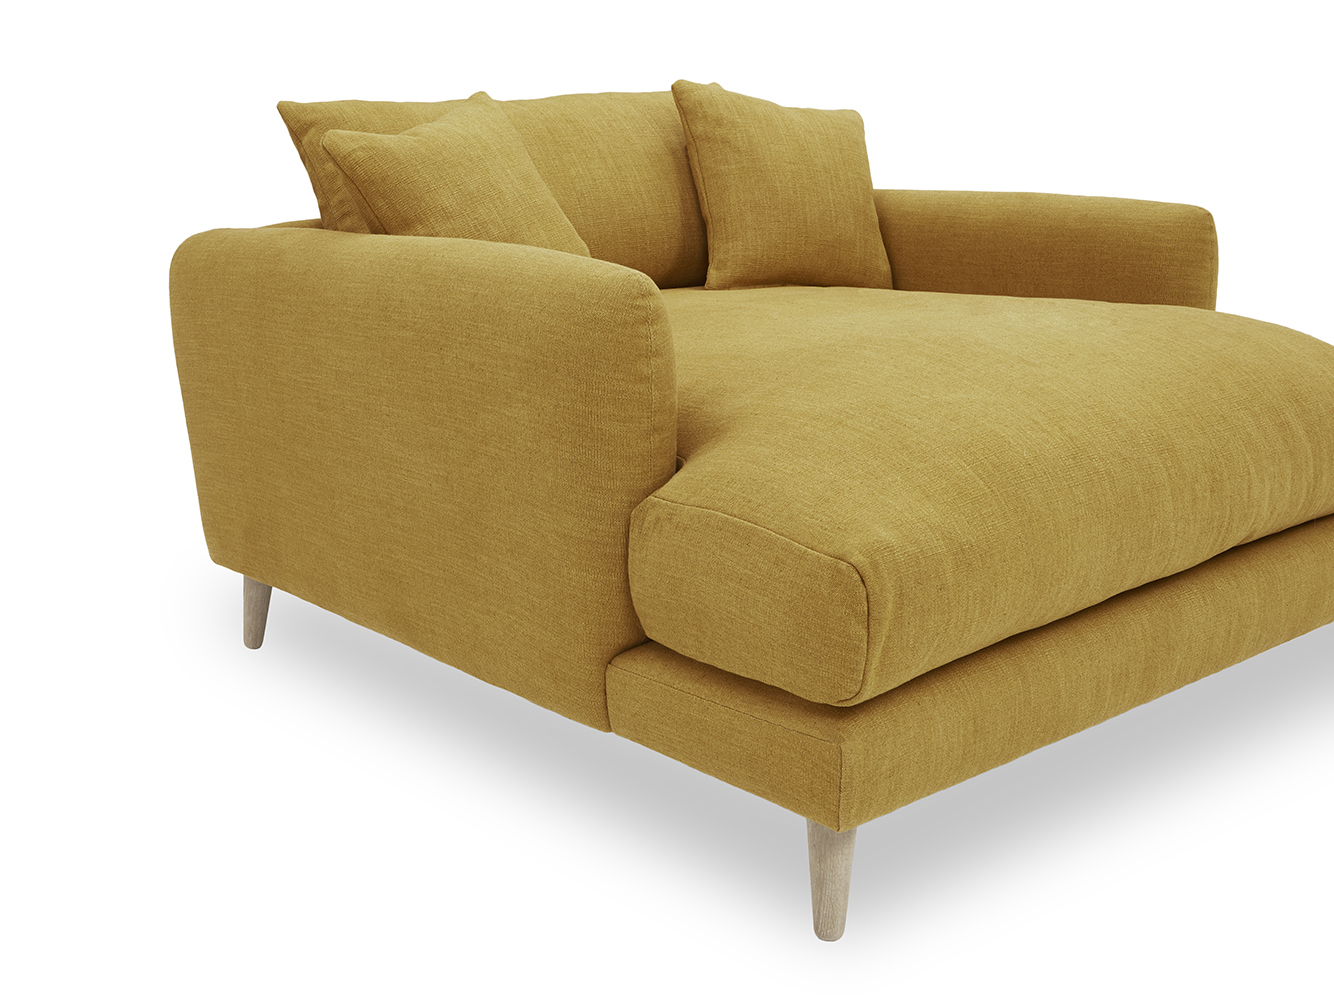 - Squishmeister Love Seat Chaise Modern Snuggle Chair Loaf